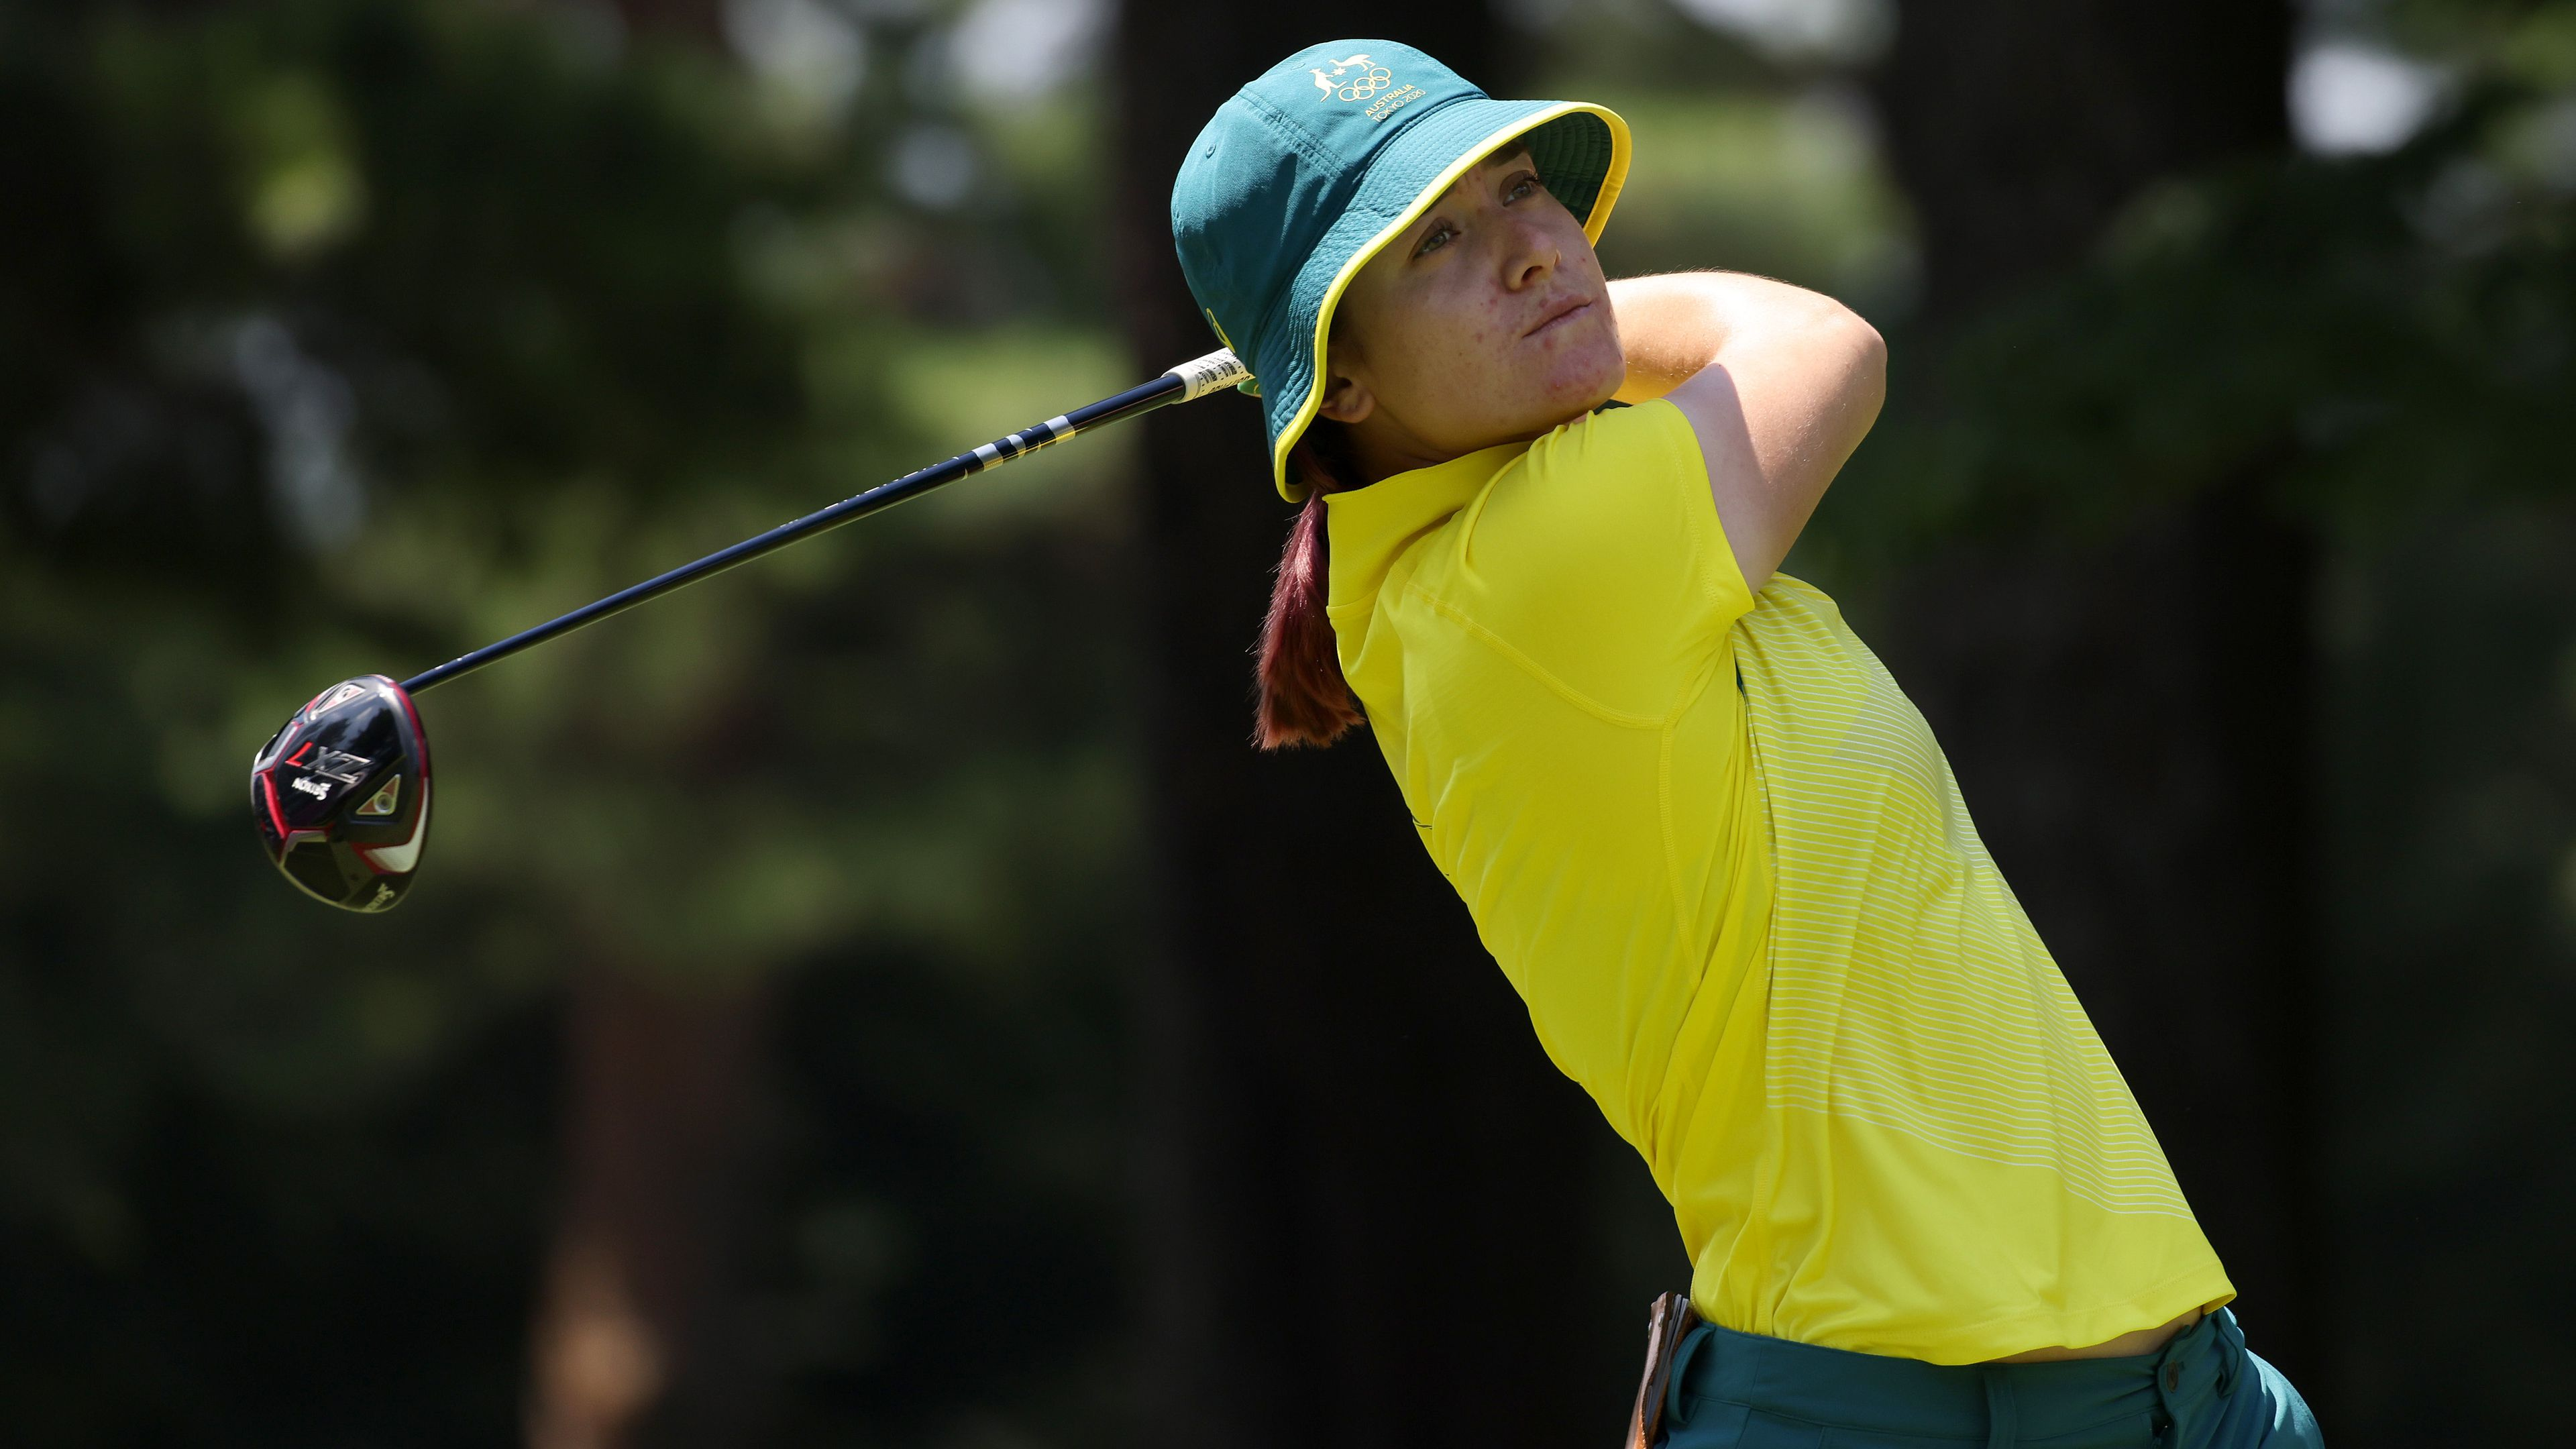 Australian golfer Hannah Green closes in on bronze medal as tropical storm approaches Tokyo